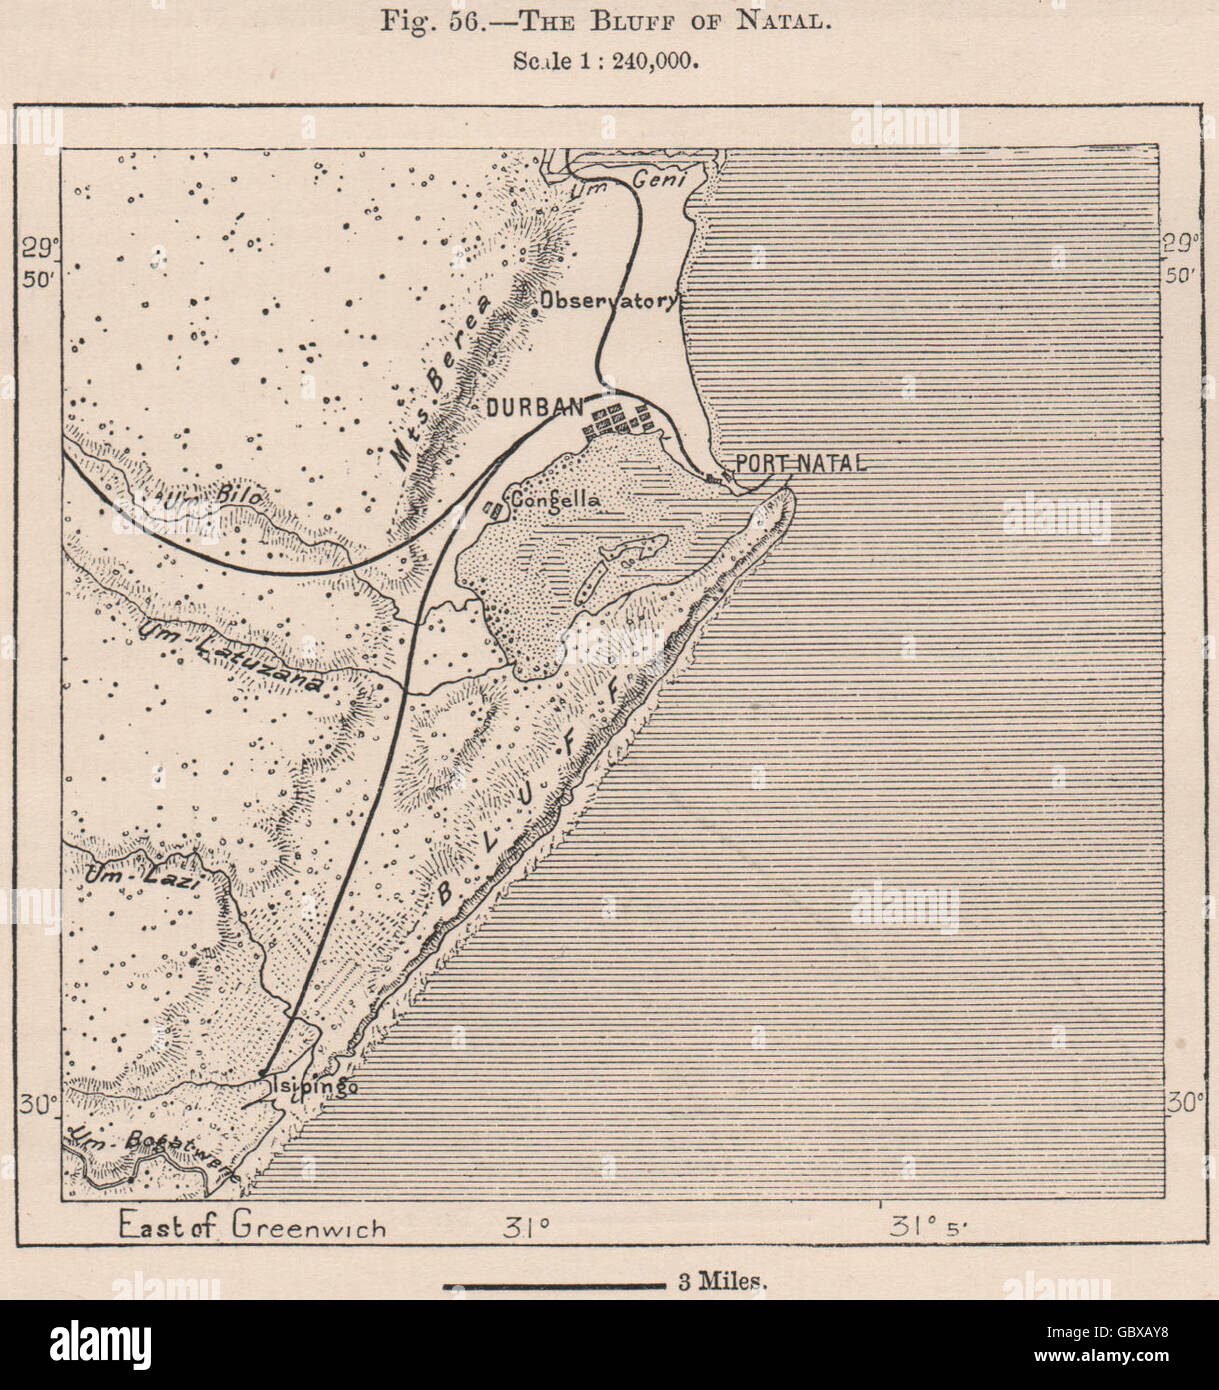 Natal South Africa Map.The Bluff Of Natal South Africa 1885 Antique Map Stock Photo